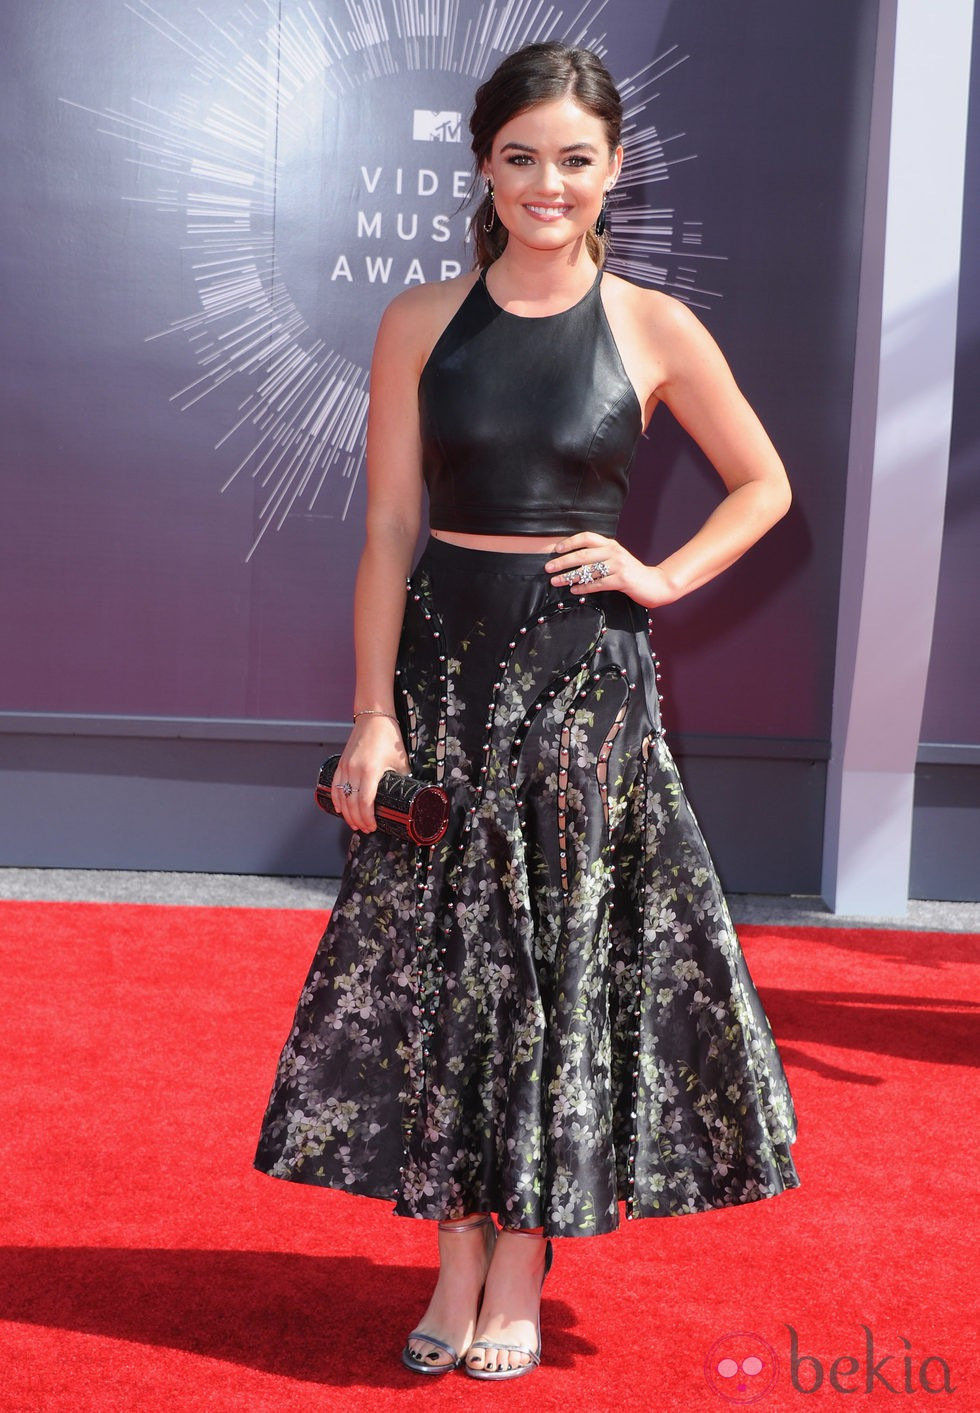 Lucy Hale en la alfombra roja de los MTV Video Music Awards 2014